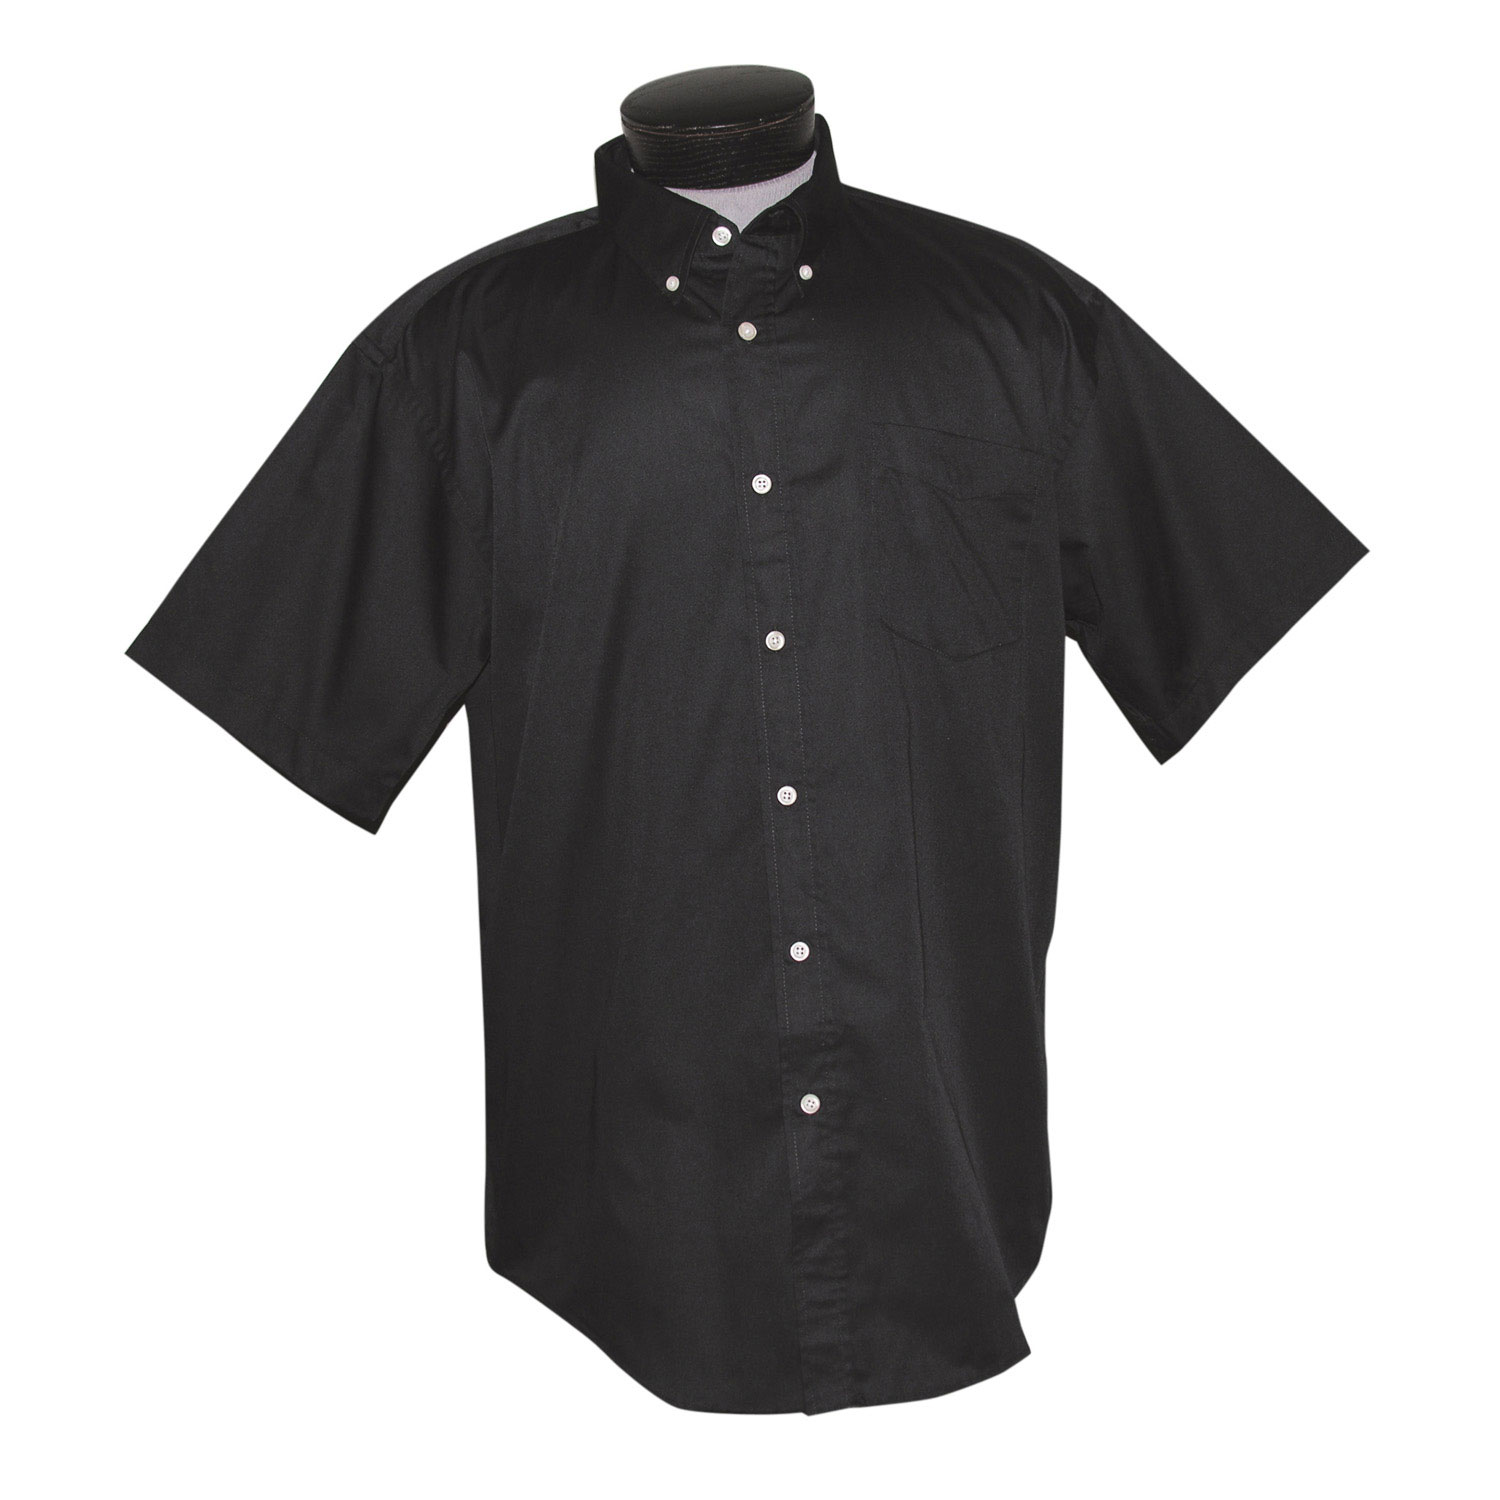 Easy Care Short Sleeve Twill by Jockey